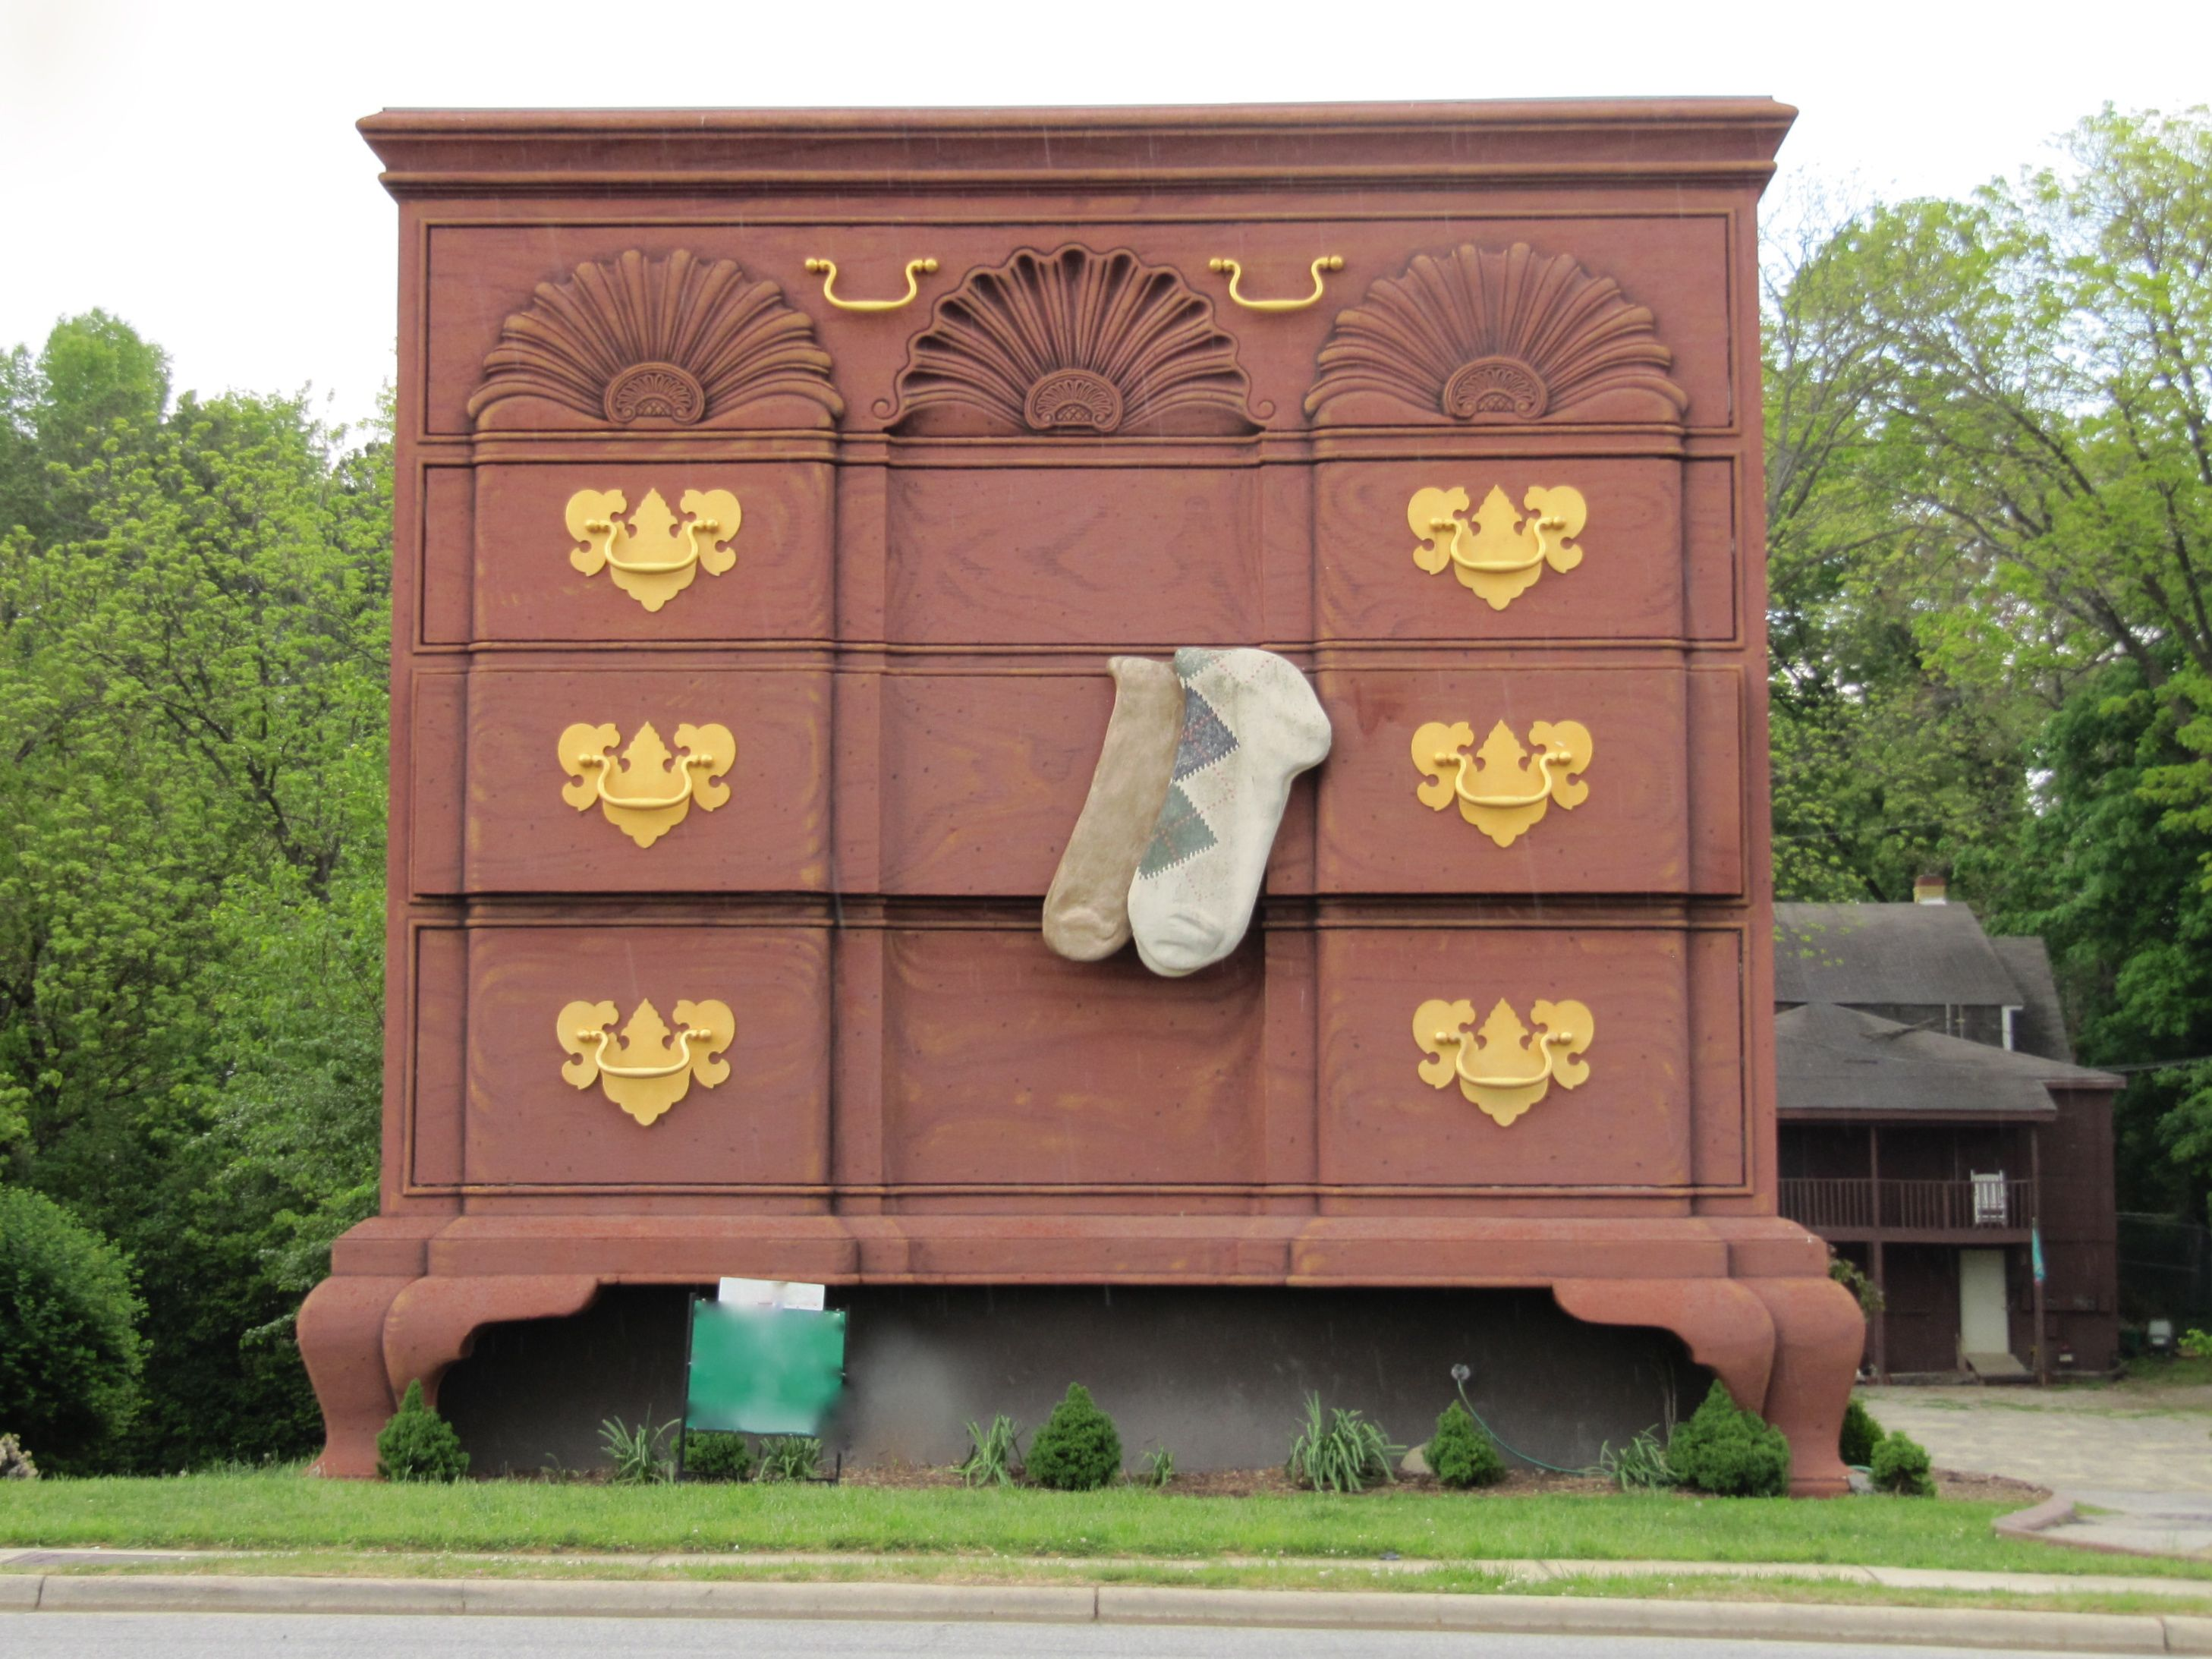 Furniture Building In High Point N C Favorite Places Spaces Pinterest High Point